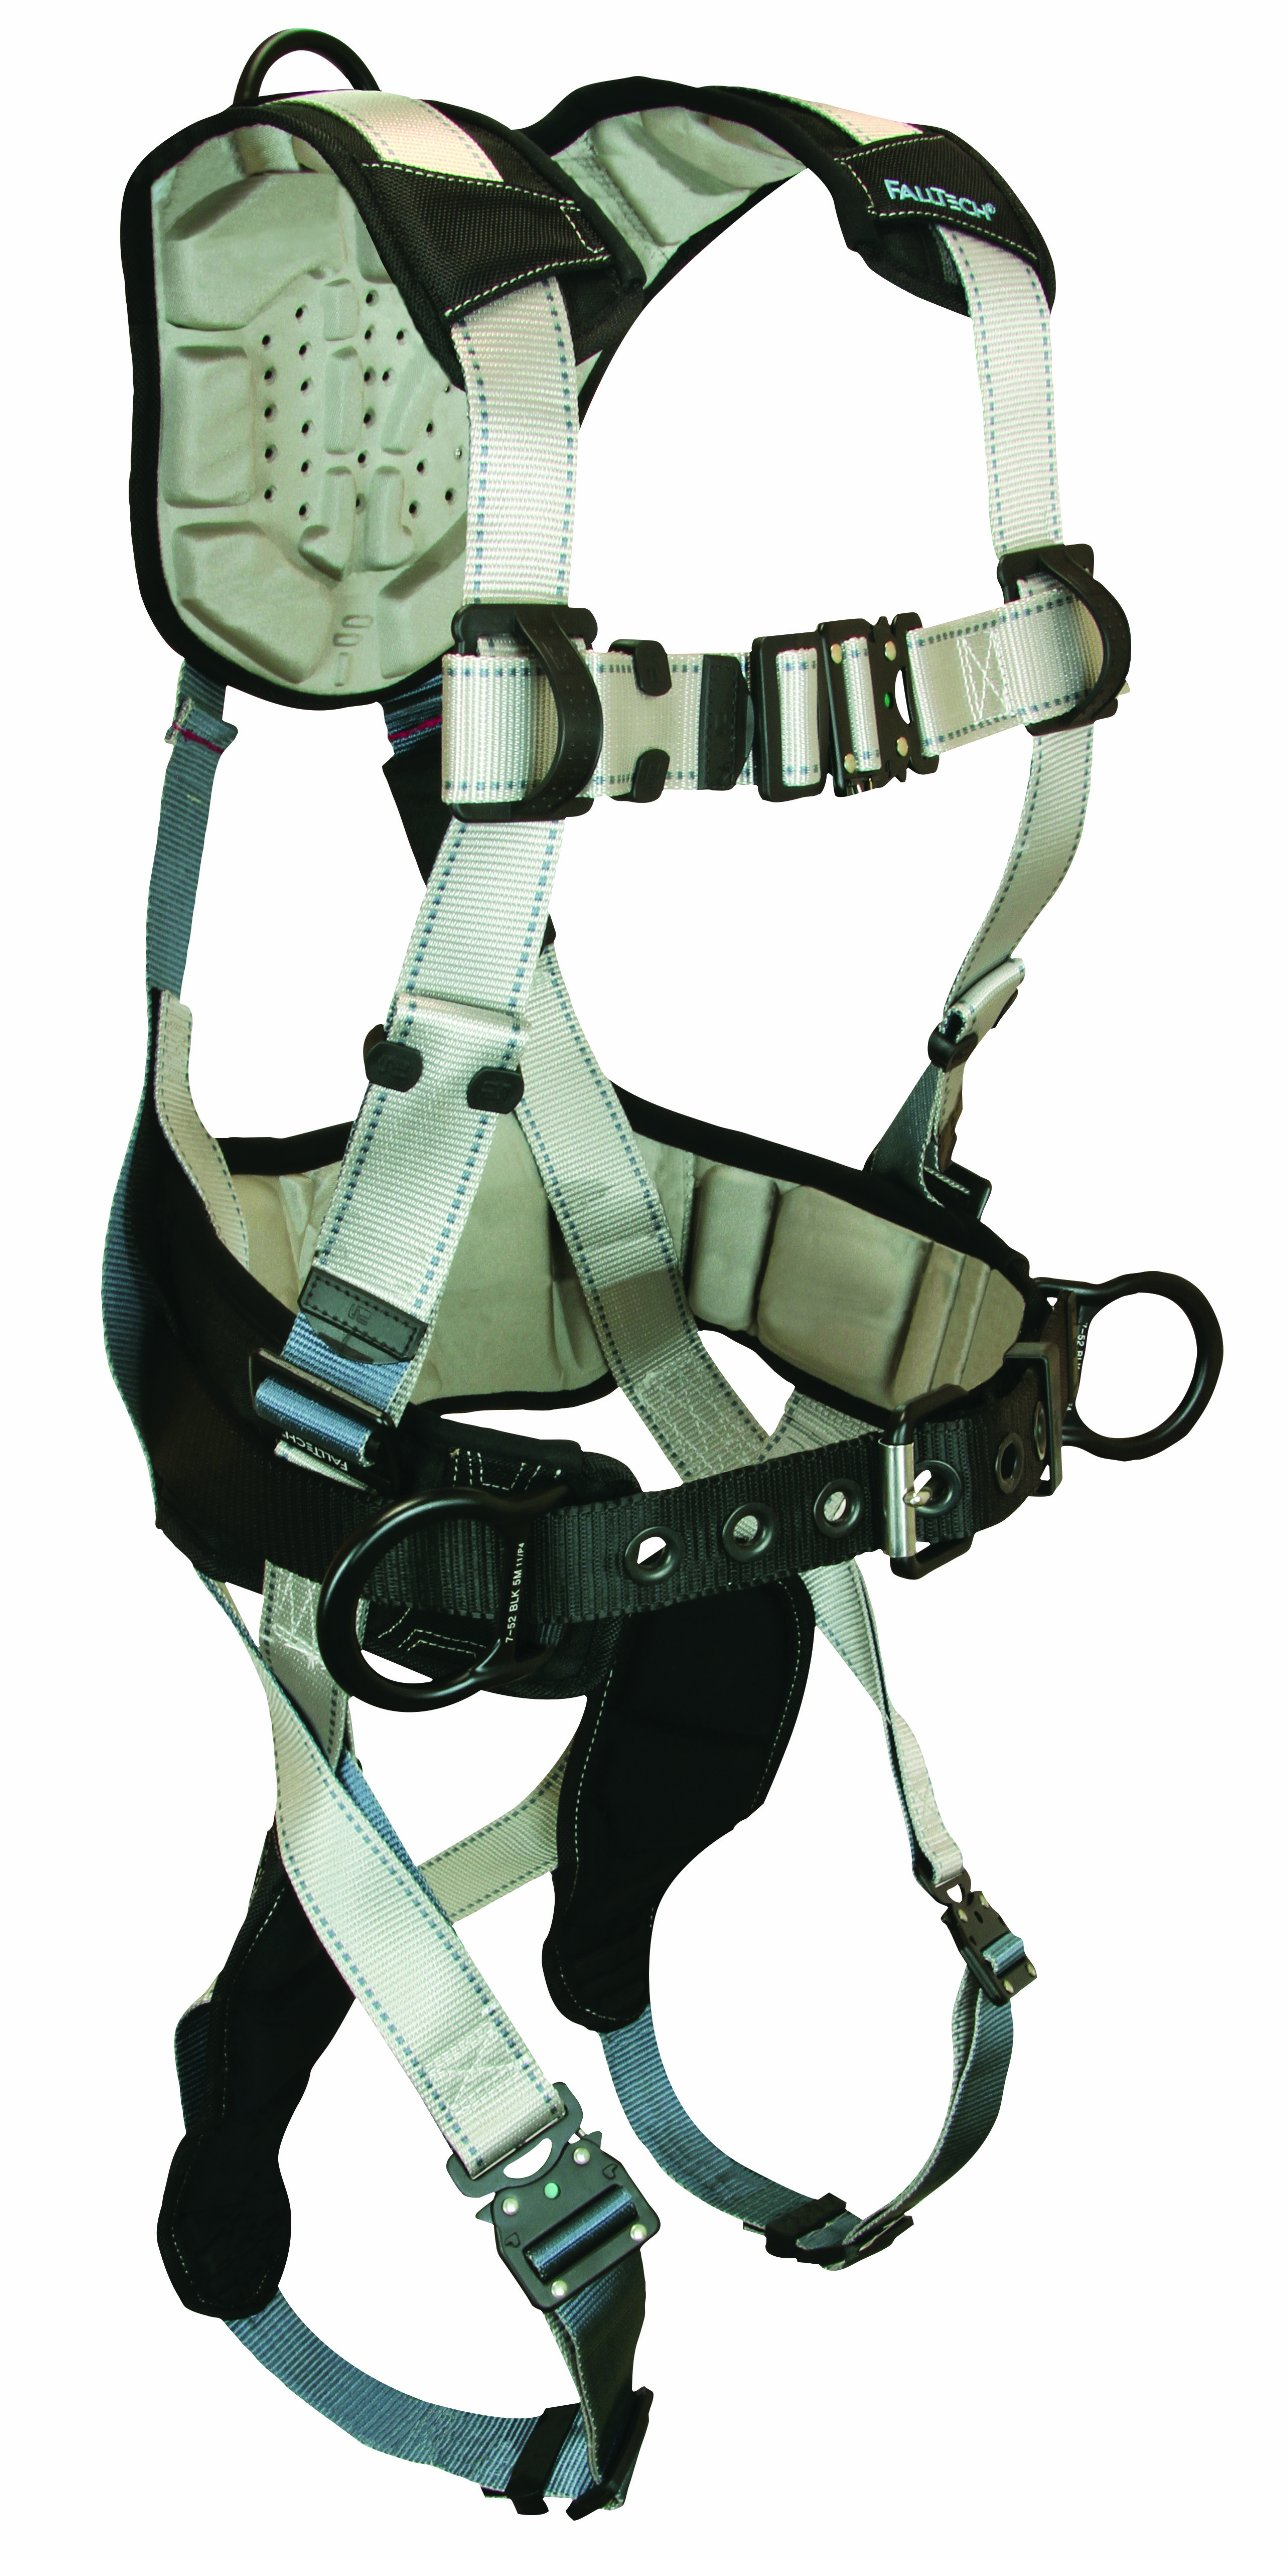 FallTech 7089L FlowTech Belted Construction Full Body Harness with 3 D-Rings, FlowScape Pads, Quick Connect Legs and Chest, Gray/Black, Large by FallTech (Image #1)